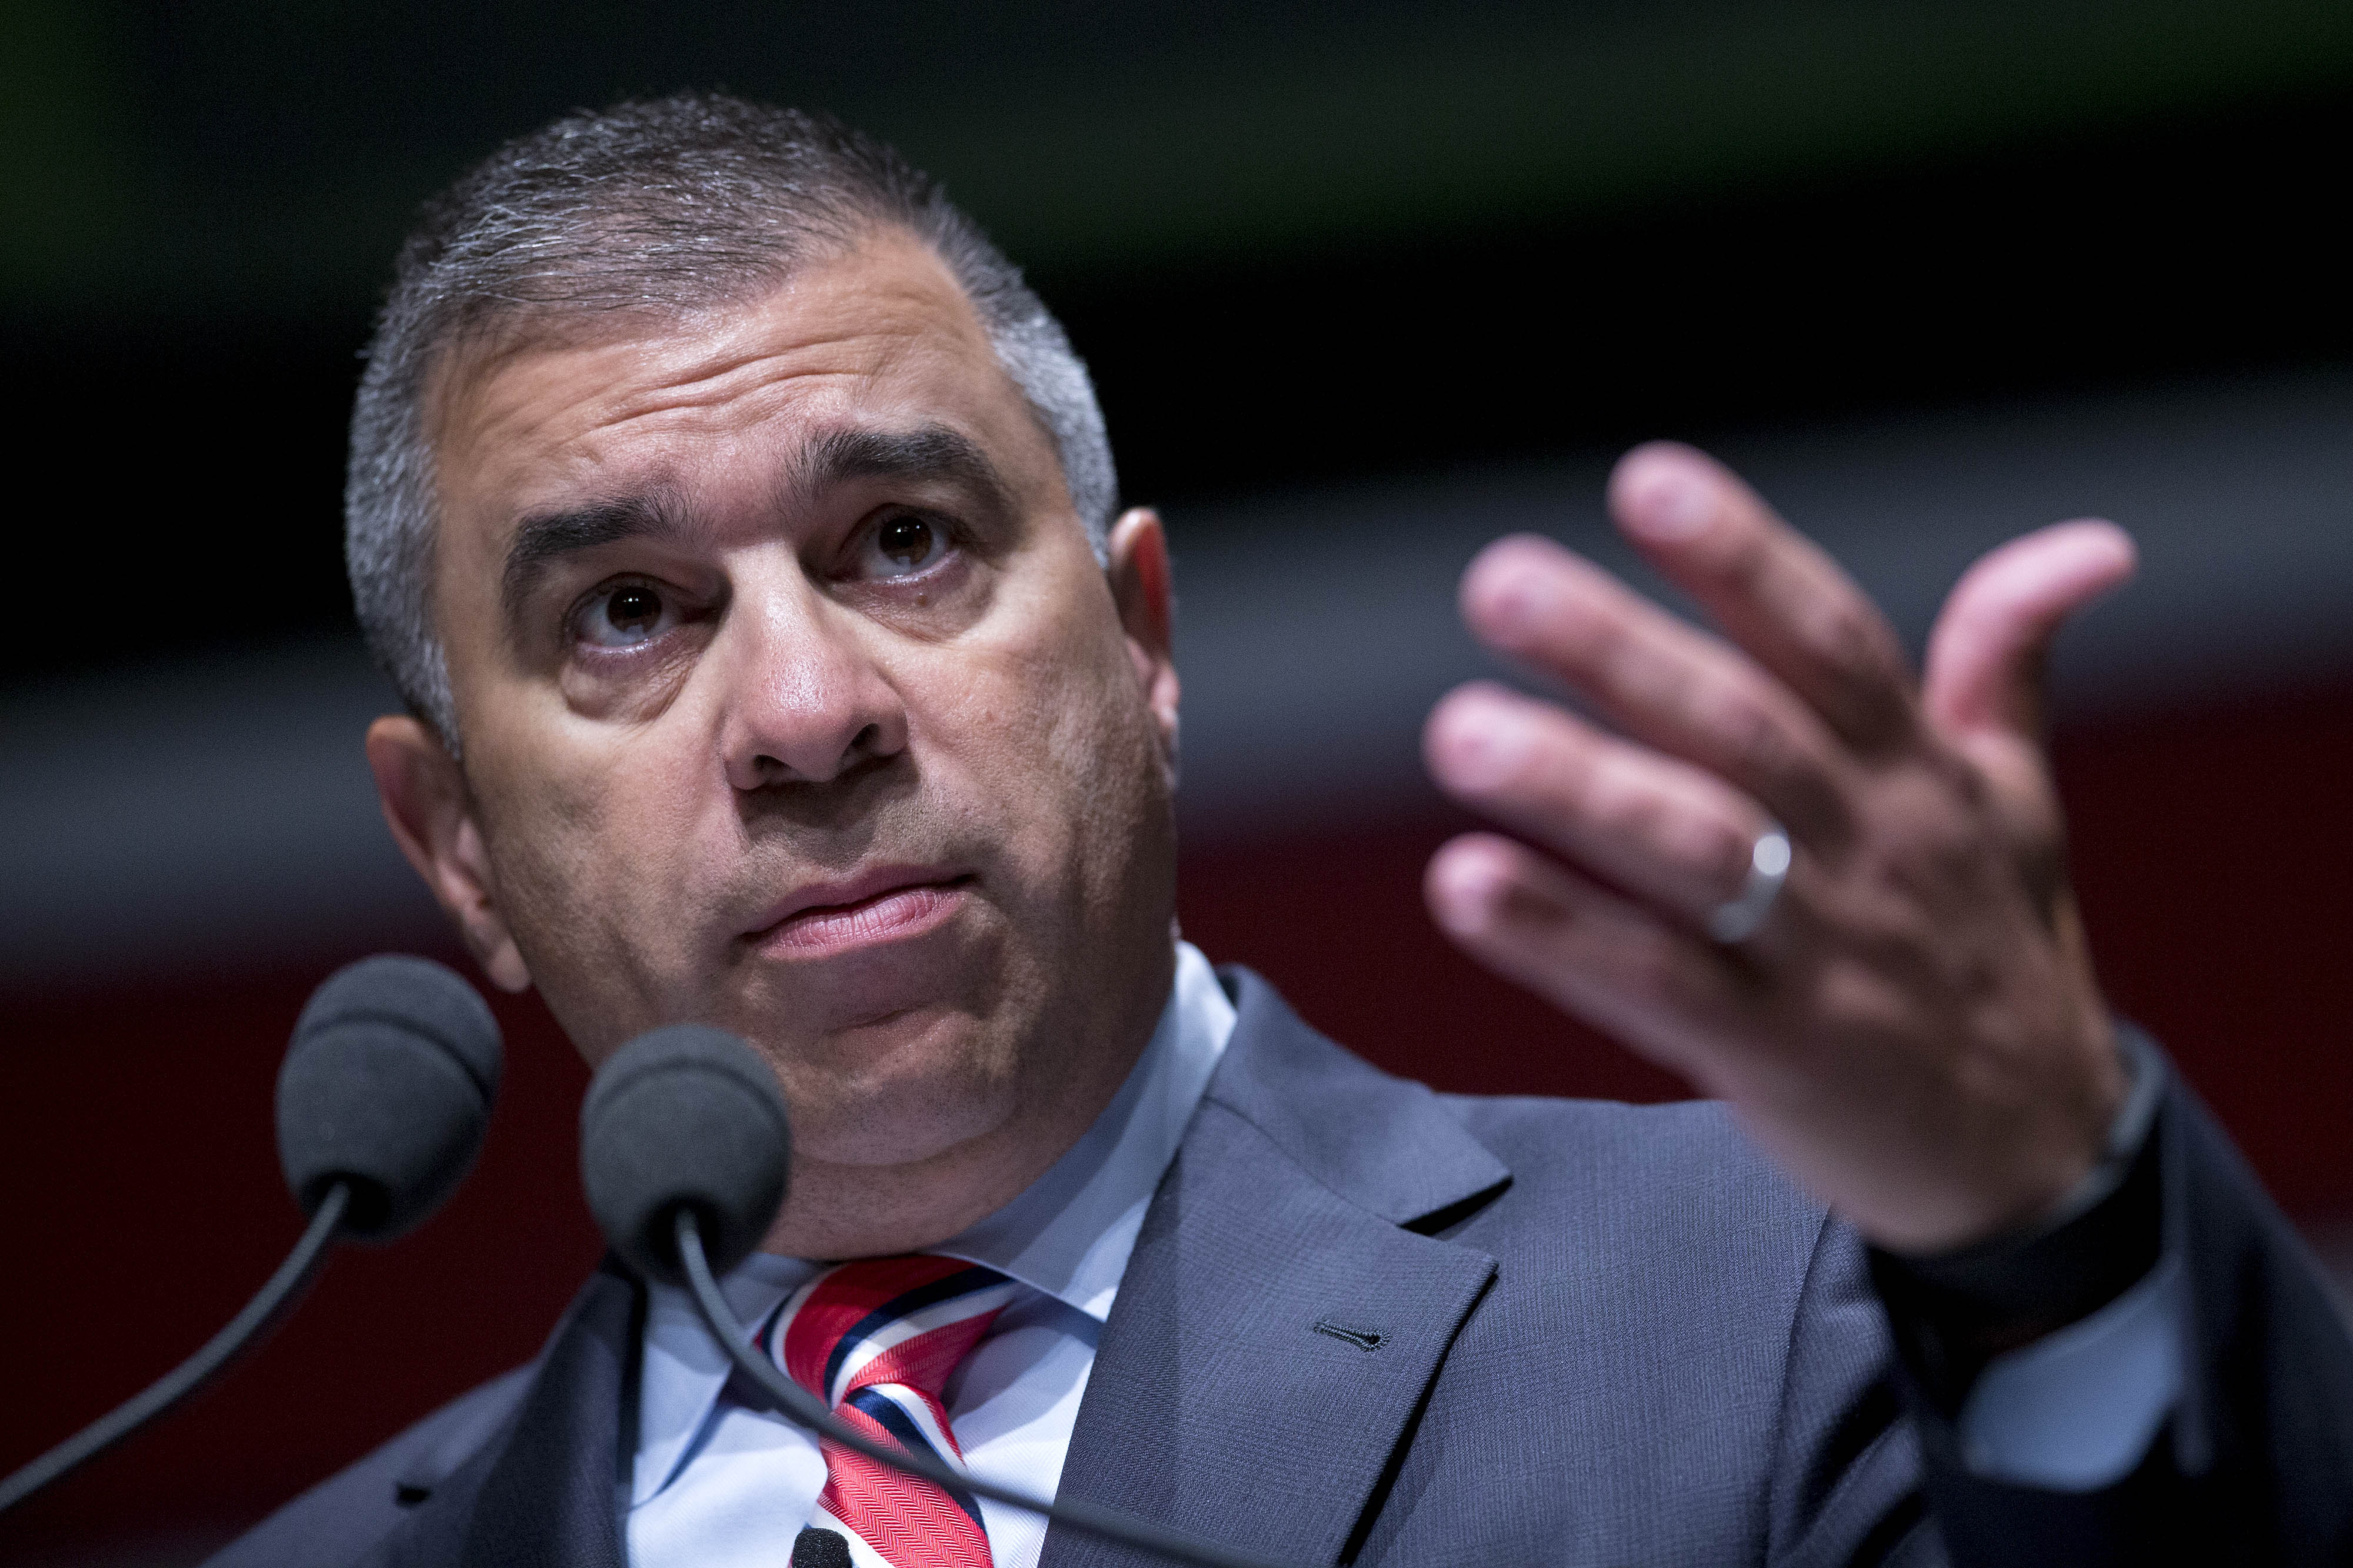 David Bossie, president of Citizens United, gestures during South Carolina Freedom Summit hosted by Citizens United and Congressman Jeff Duncan in Greenville, South Carolina, U.S., on May 9, 2015.